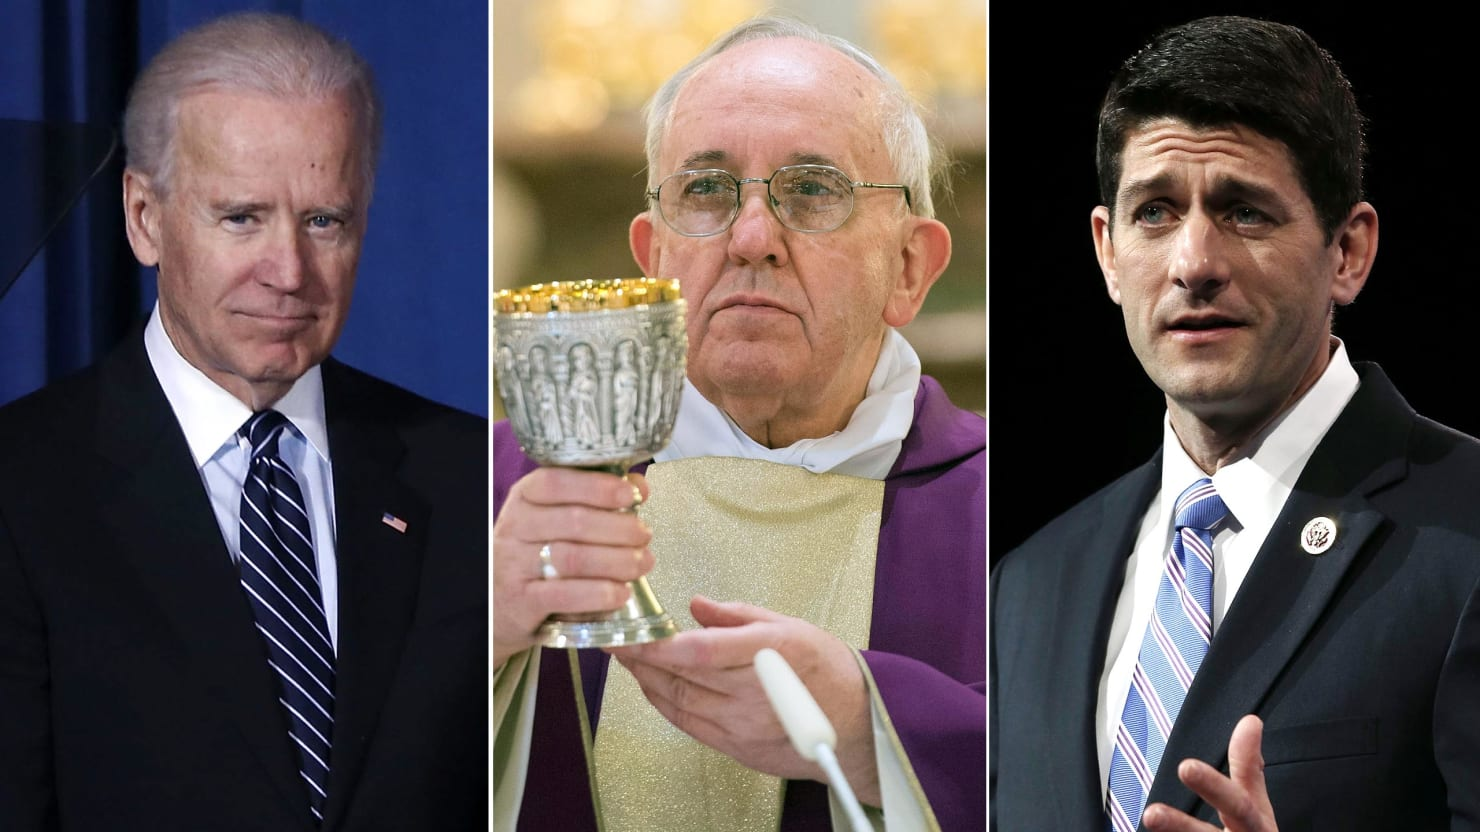 America's Catholic Moment, and Its New Breed of Catholic Politicians